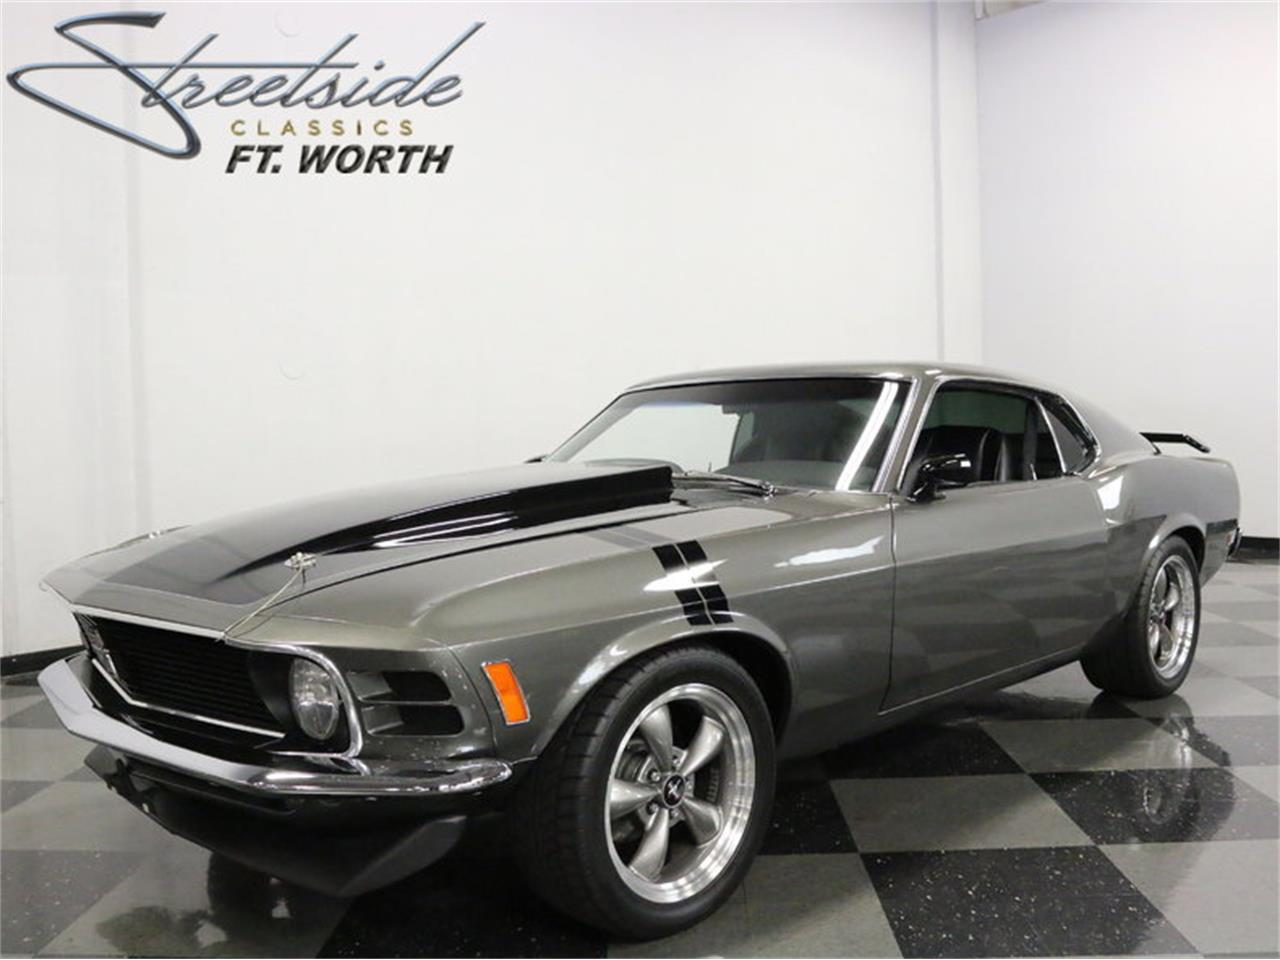 Large picture of 70 mustang fastback restomod lqo4